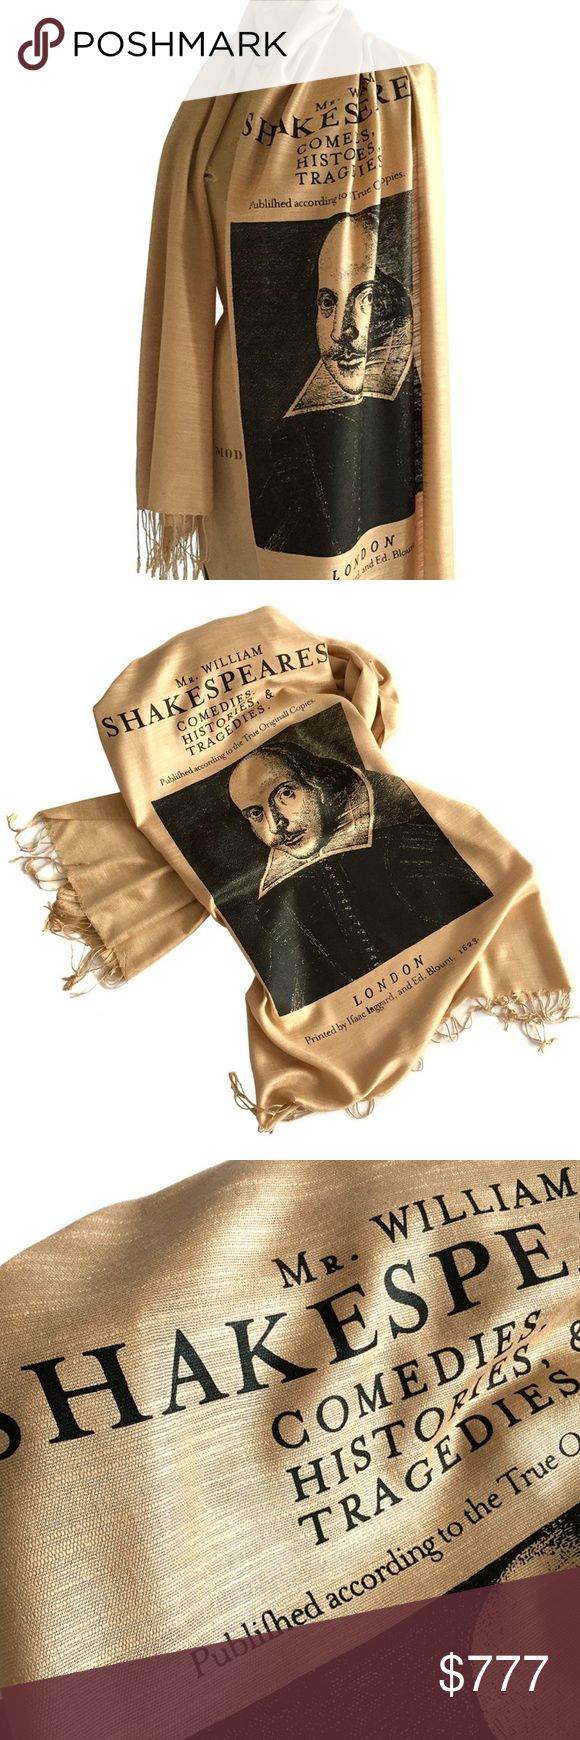 """Shakespeare Pashmina Scarf Show your smarts! Impress fans of literature, history, theater, library science and rare books all at once! 2016 is the 400th anniversary of Shakespeare's death, so we are celebrating our love for Mr. Shakespeare and all things literary through of course... scarves!   • Fabric: Viscose (modal linen) • Weight: Perfect for all seasons. • Printing ink: Non-toxic, waterbased ink.  Scarf size: 74"""" x 28"""" with 3"""" tassels on both ends.  These are absolutely gorgeous and…"""